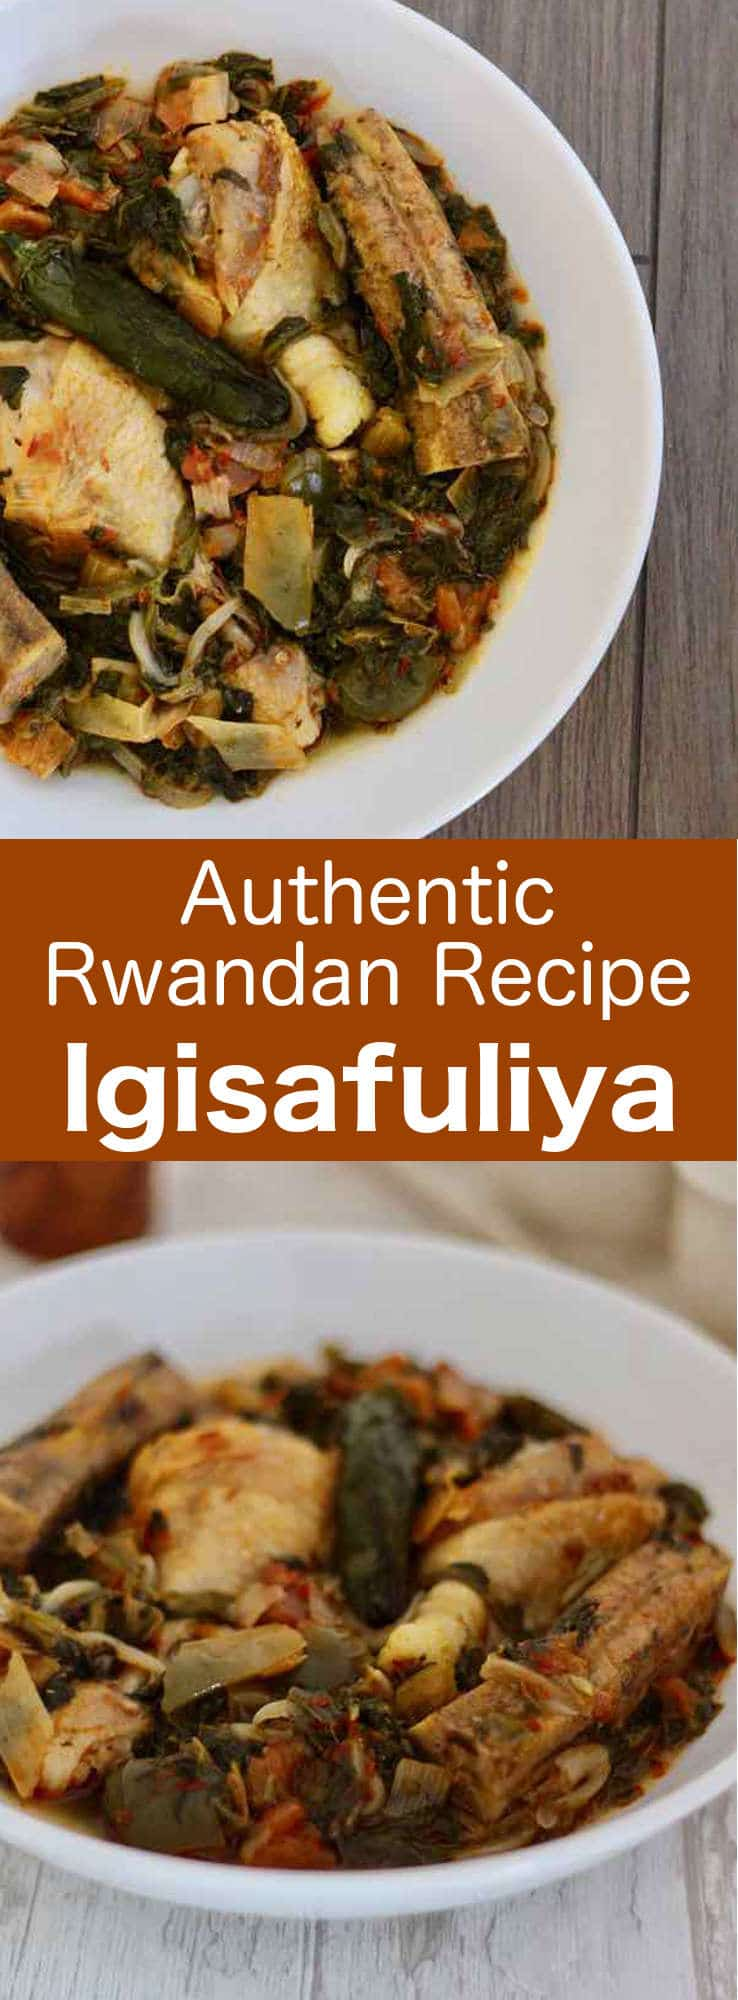 Igisafuliya is a delicious Rwandan dish prepared with chicken, vegetables and plantains whose name means 'pot' in Kinyarwanda. #Rwanda #Africa #AfricanCuisine #196flavors